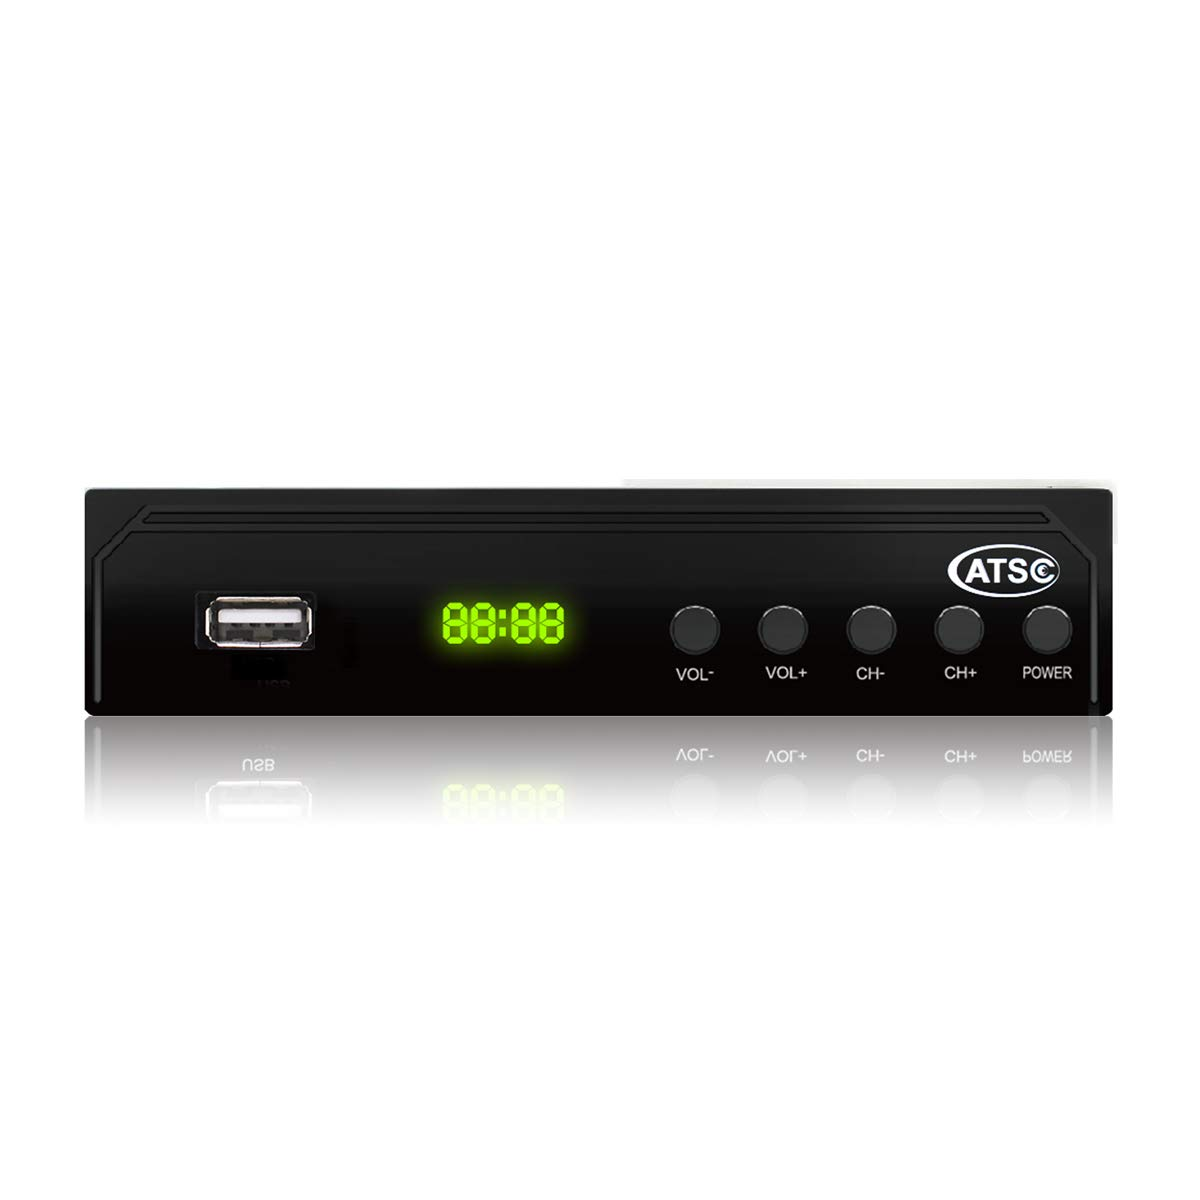 Vmade Digital Converter Box ATSC Set Top Box for Analog HDTV 1080P with AC-3/dolby,Recording,PVR Function,Pause Live TV,Sleep Timer